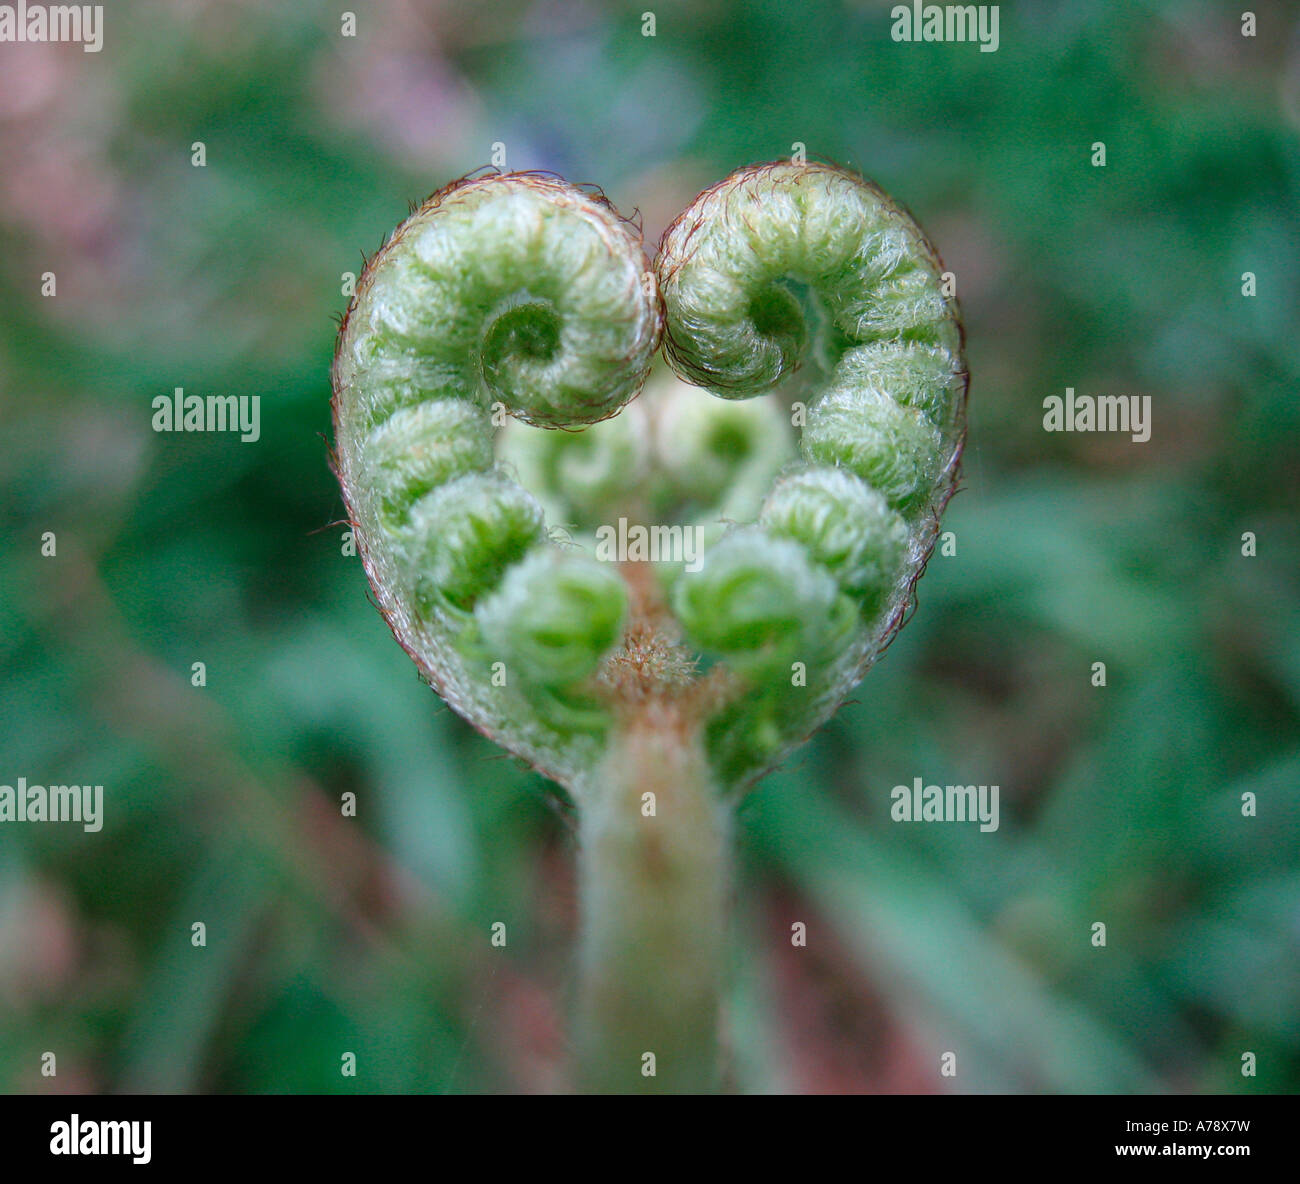 A heart shaped newly formed fern leaf in the early stages of growth - Stock Image